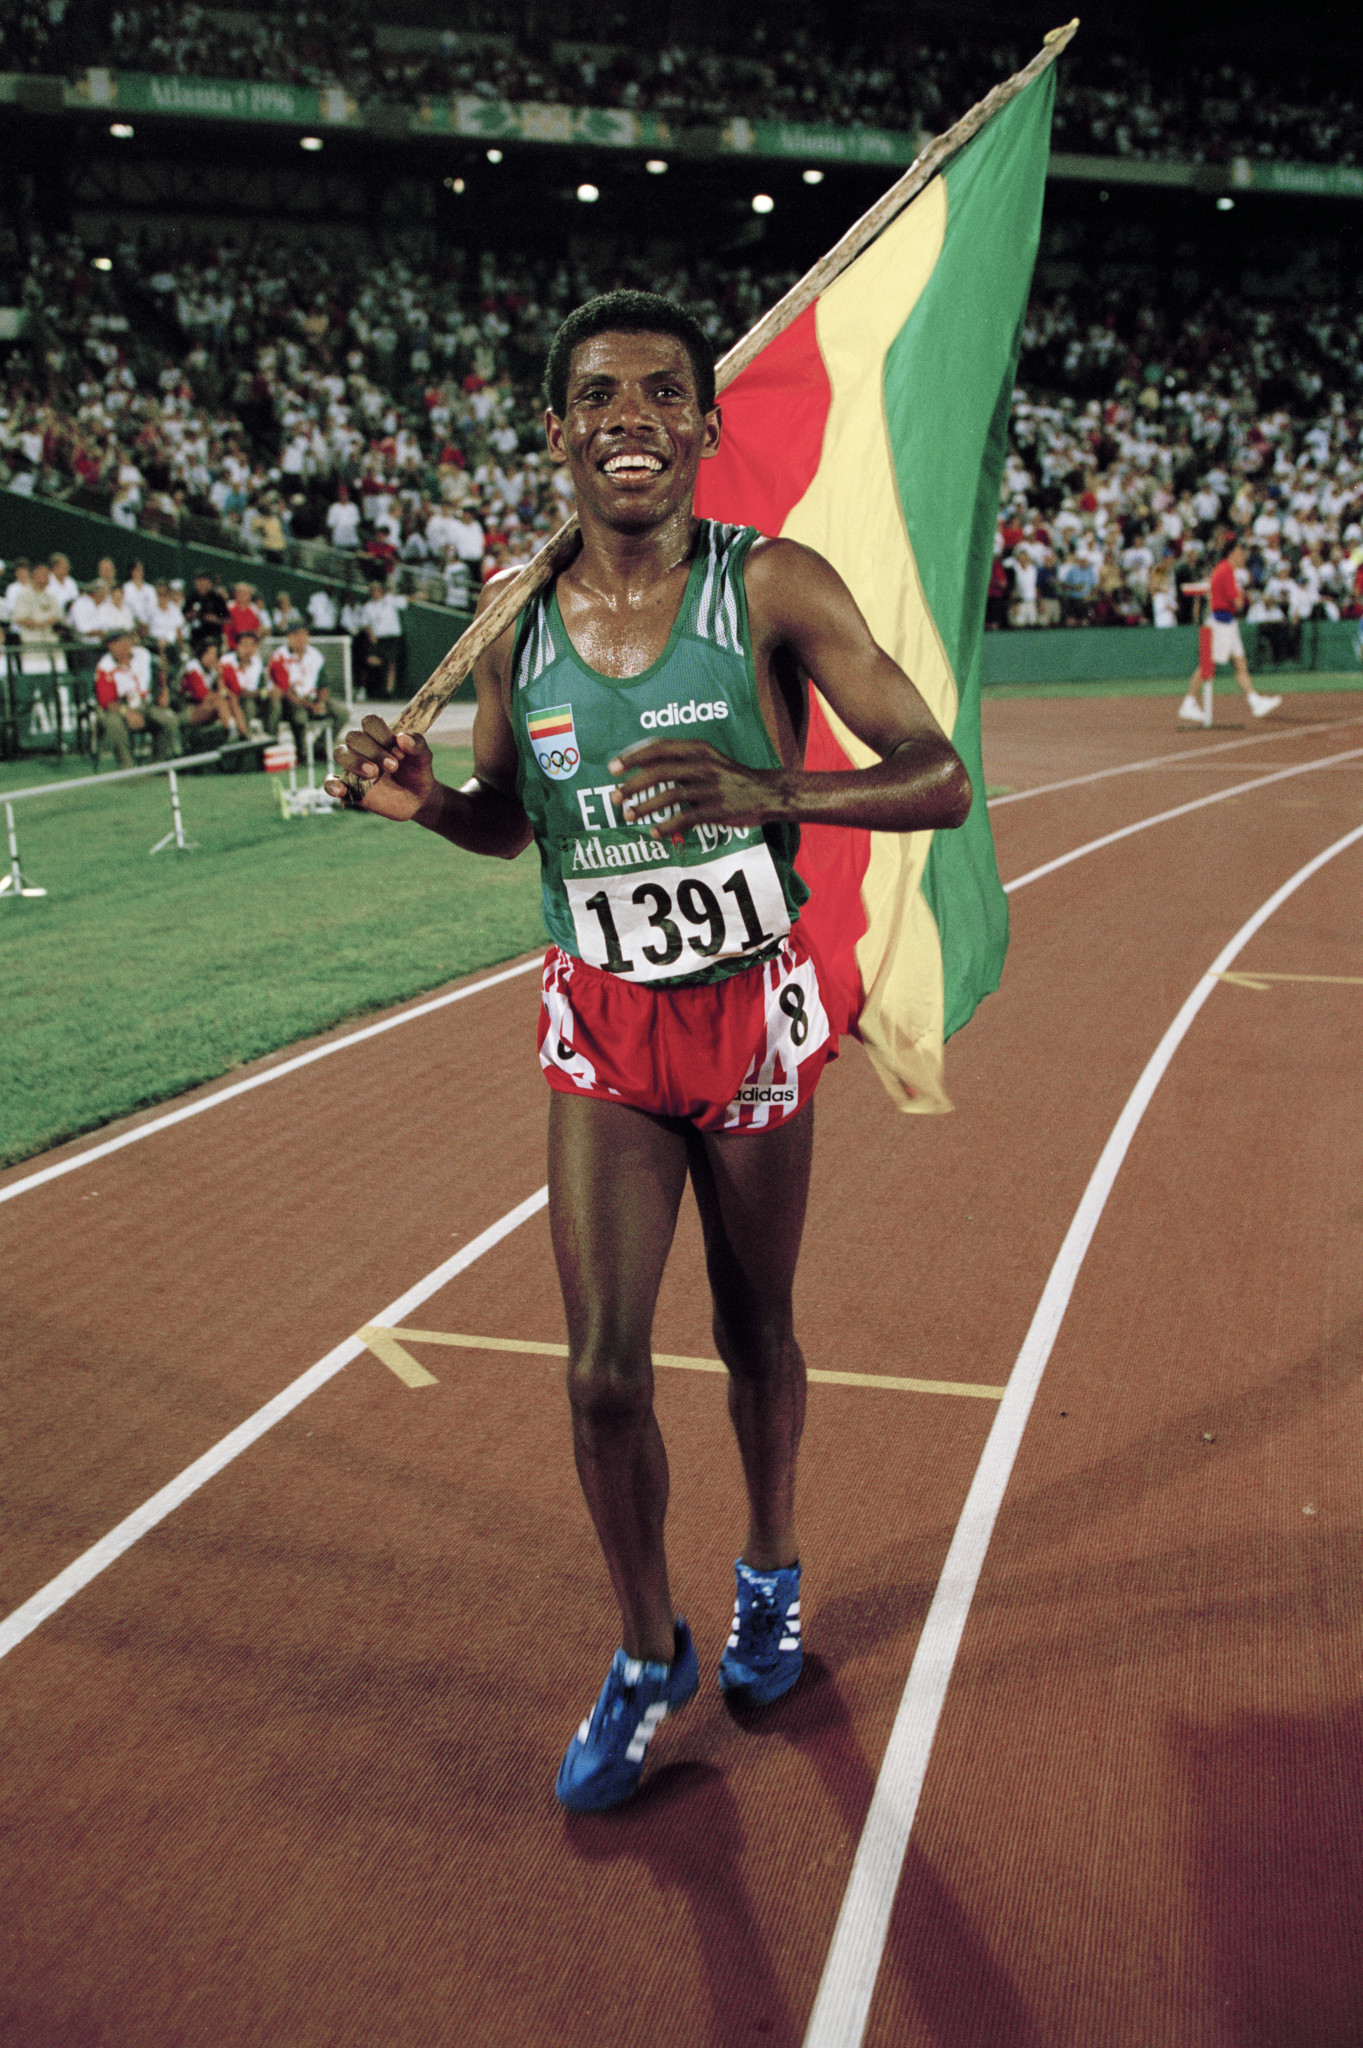 Memorabilia from Ethiopia's multiple world and Olympic champion Haile Gebreselassie, pictured after winning 10,000m gold at the 1996 Atlanta Games, will be among items donated to the new IAAF Heritage department this week at the IAAF World Indoor Championships